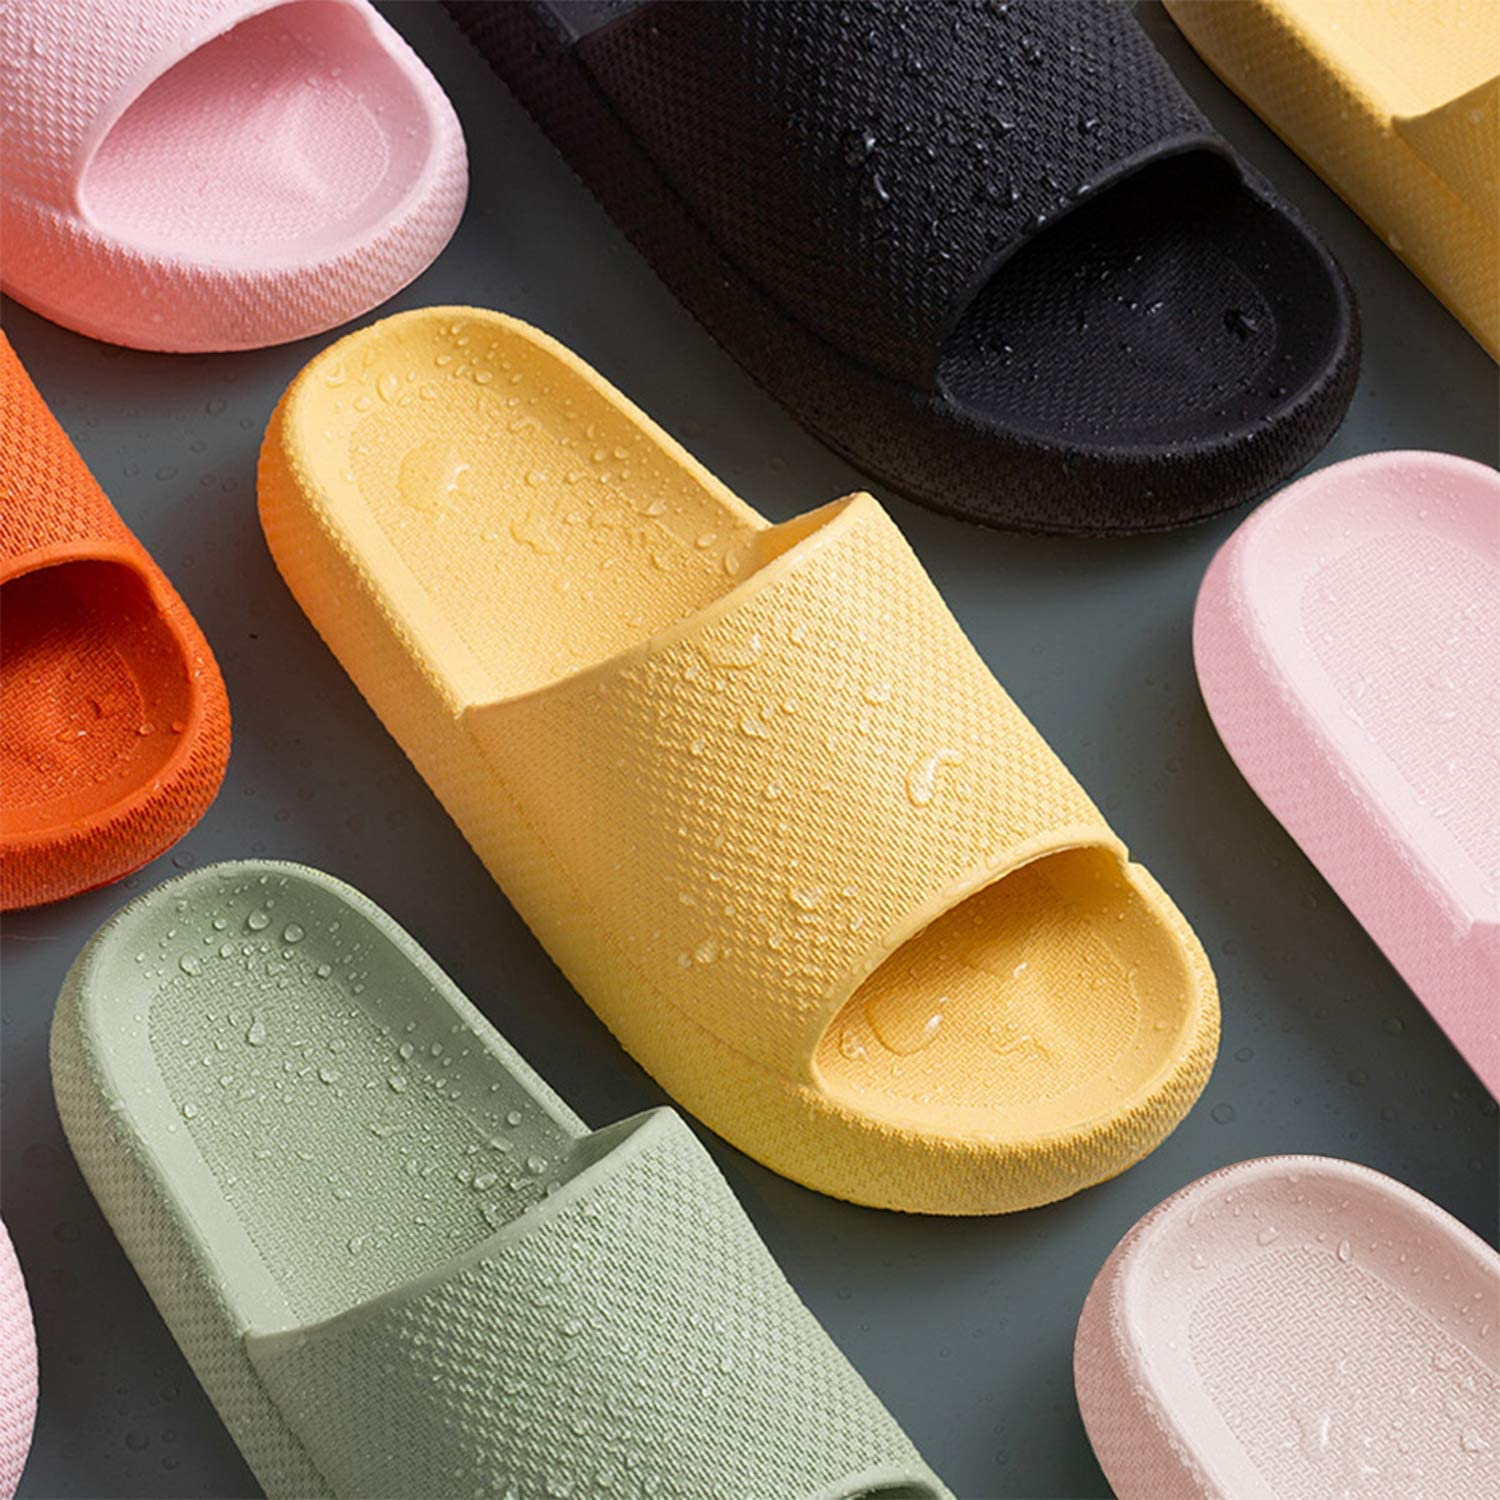 Menore Slippers for Women and Men Quick Drying EVA Open Toe Soft Slippers Non-Slip Massage Shower Spa Bath Pool Gym House Sandals for Indoor /& Outdoor